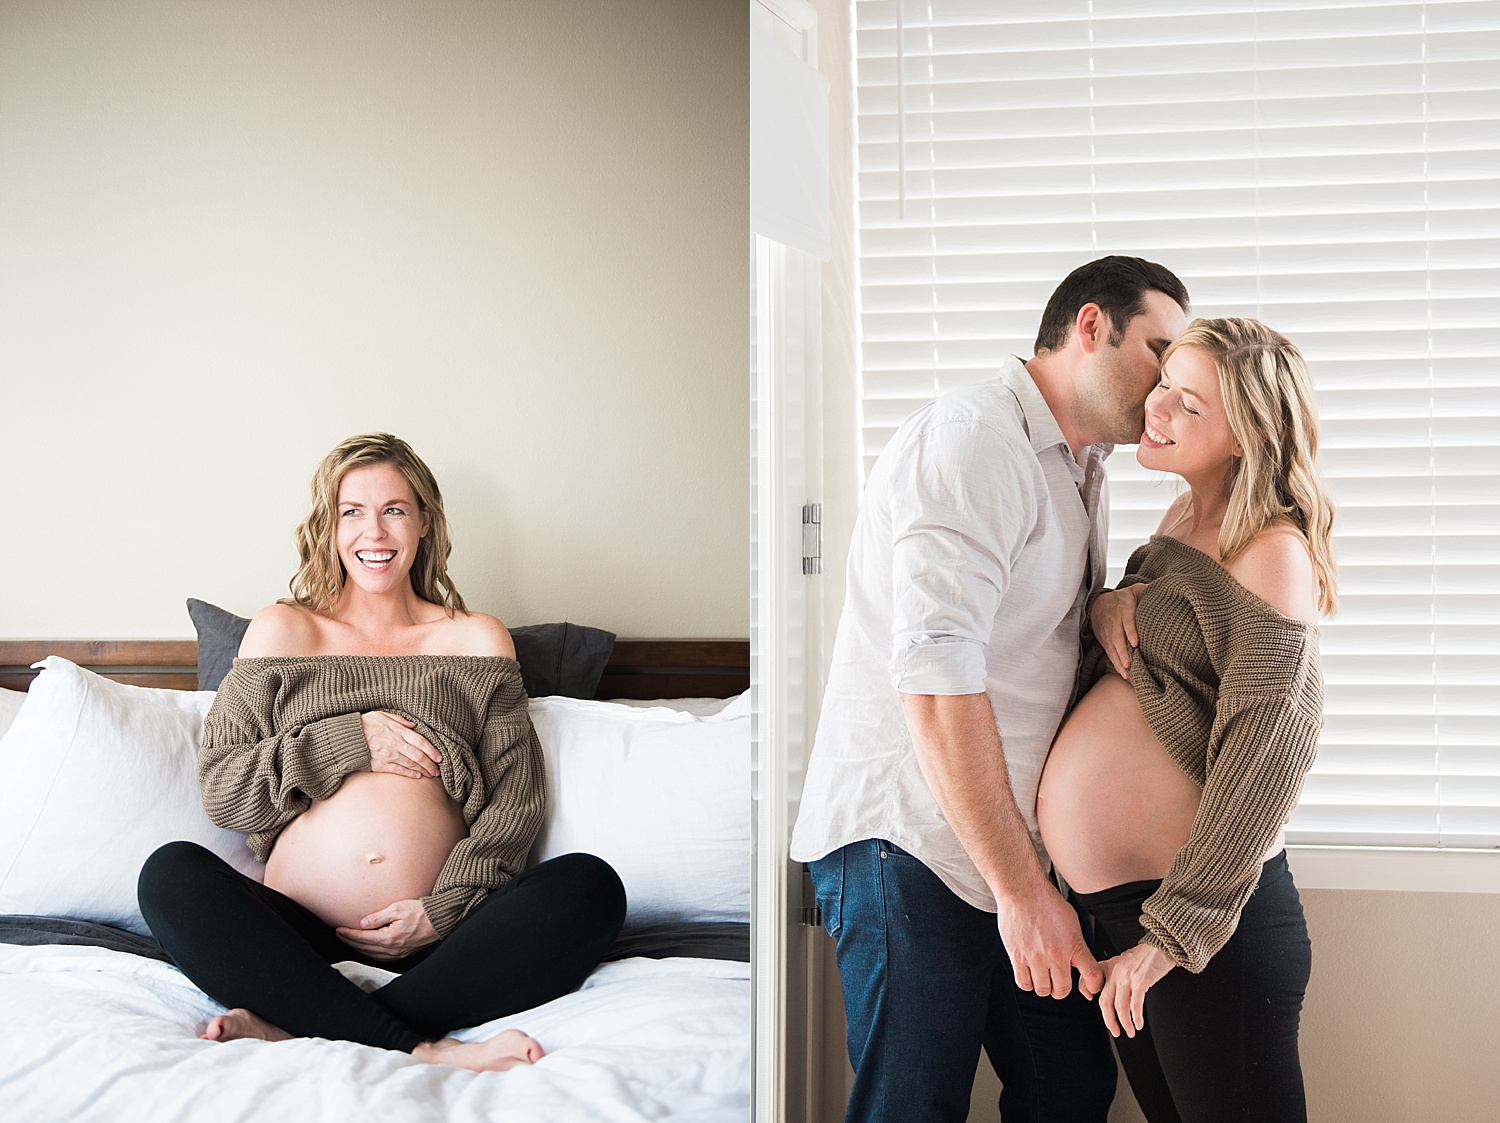 jennifer-jayn-photography-emeryville-lifestyle-maternity-portrait-session_0002.jpg